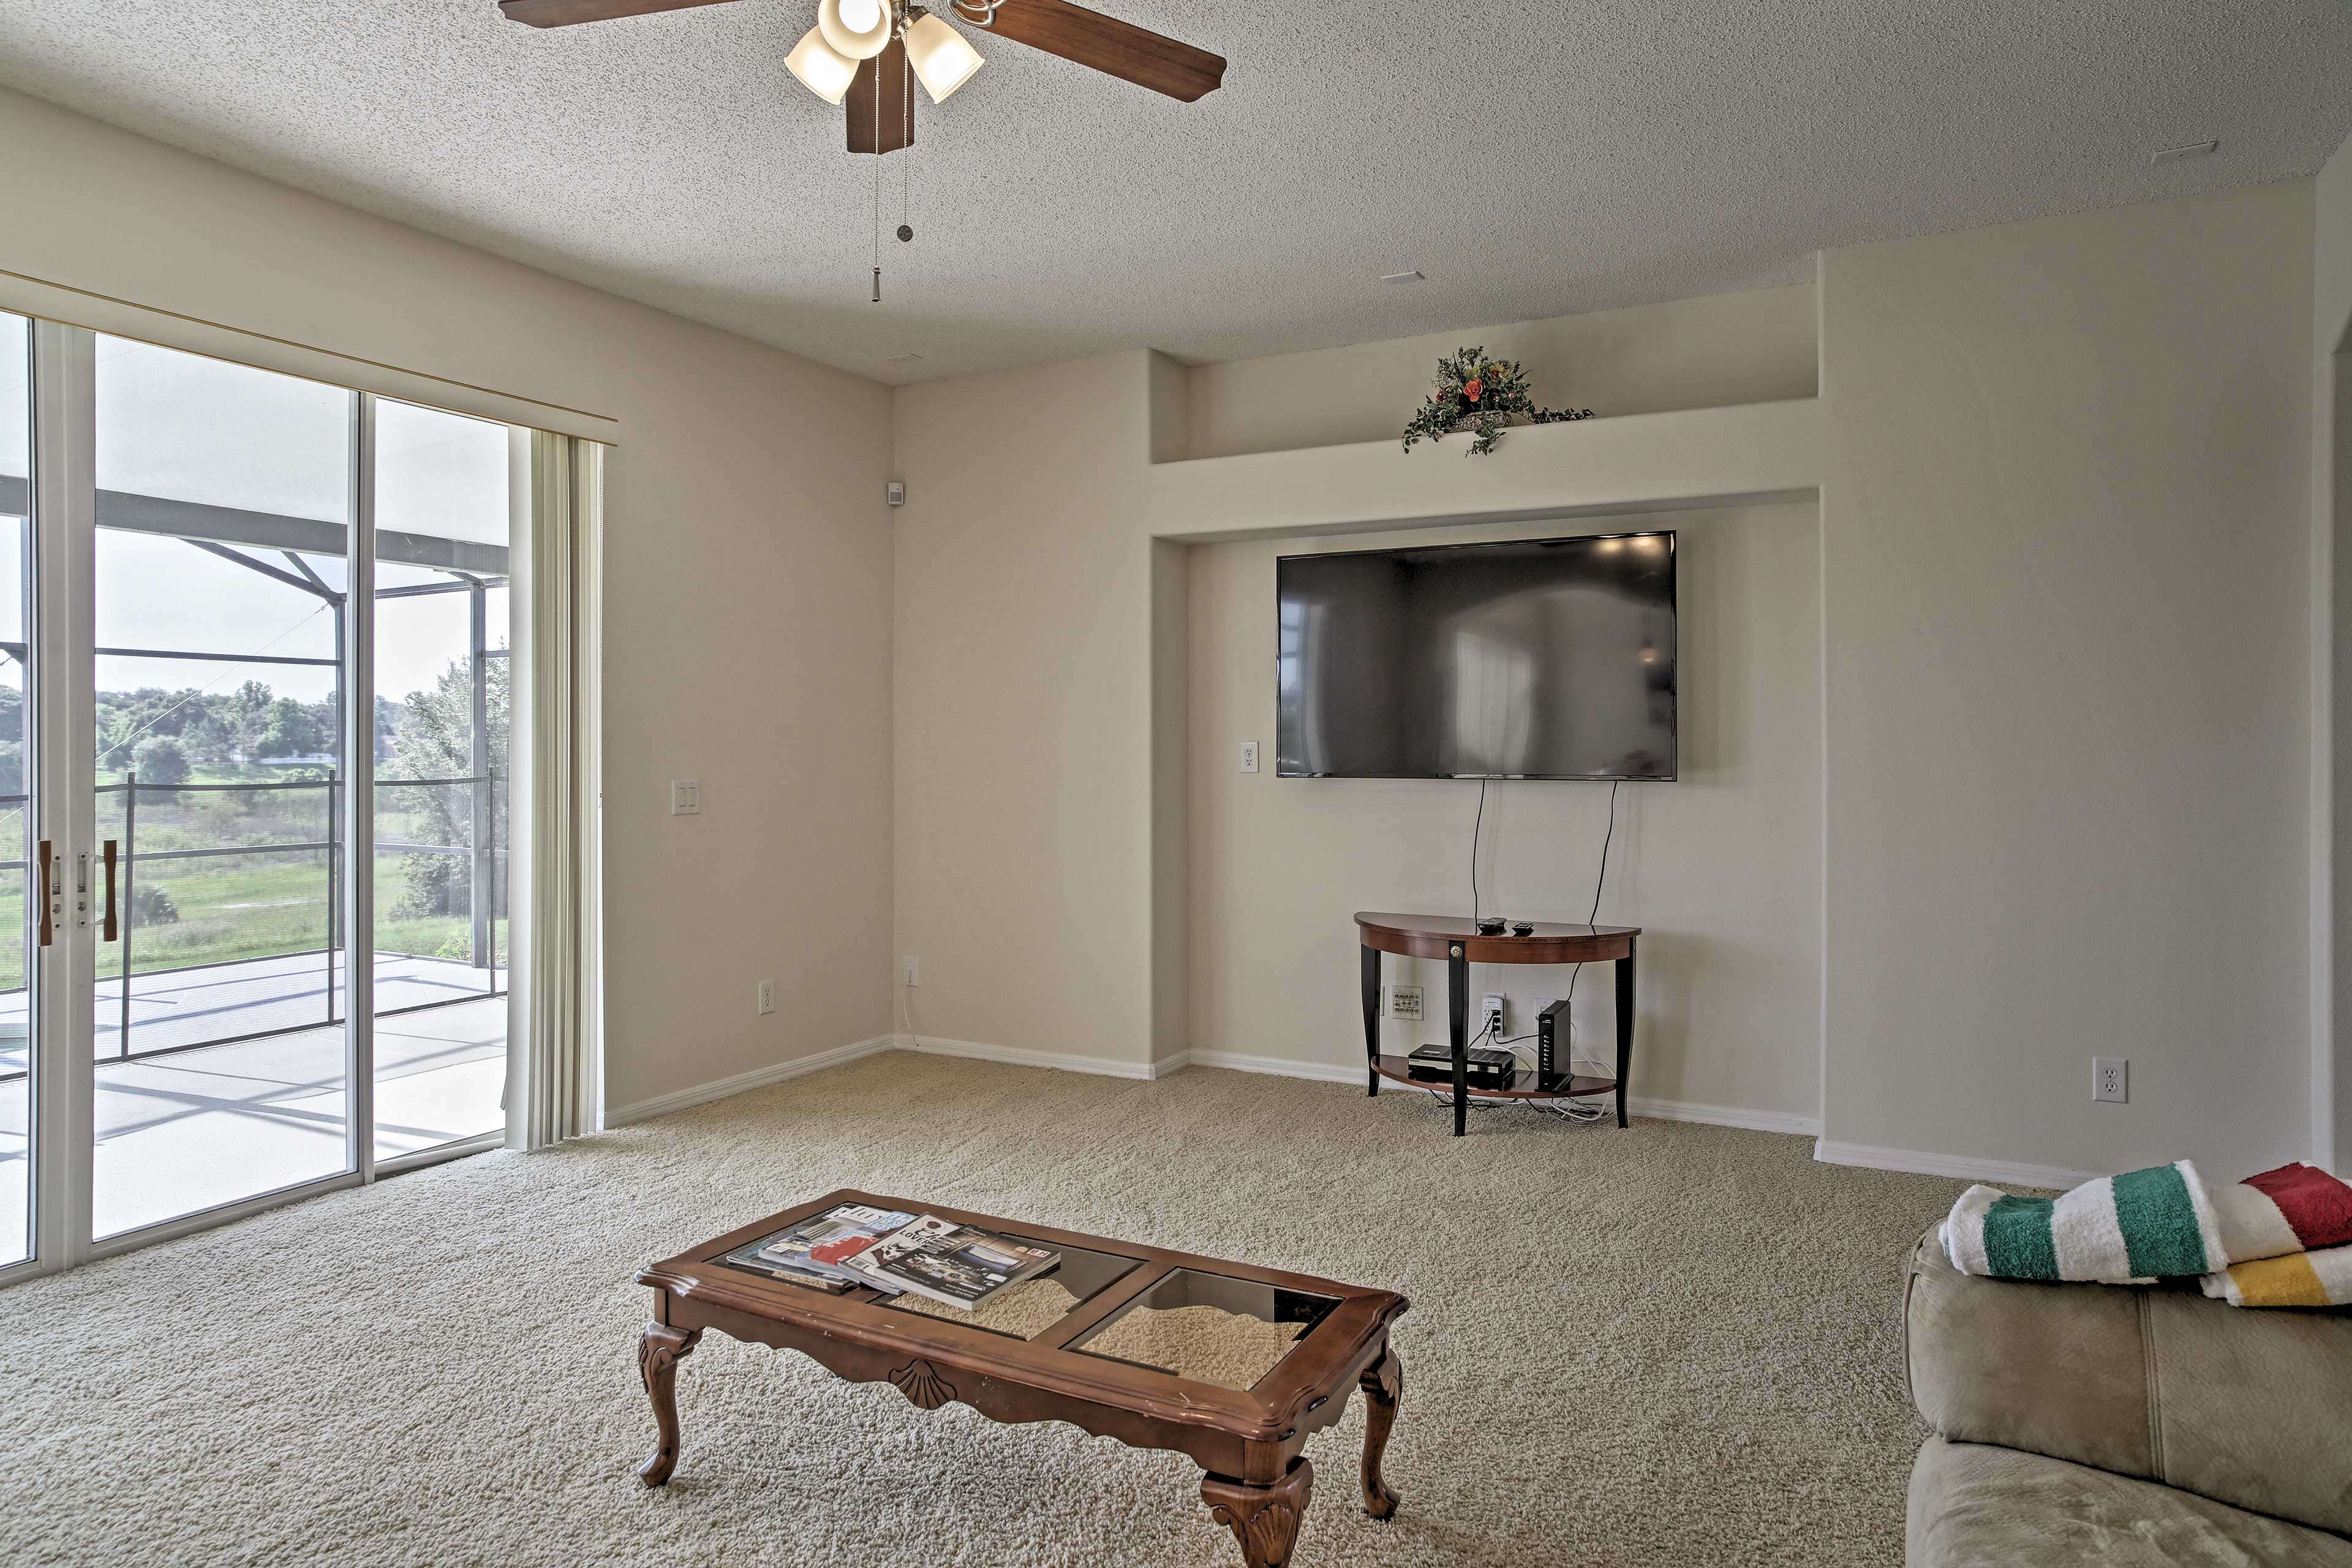 The living room offers 2 couches and a cable TV.